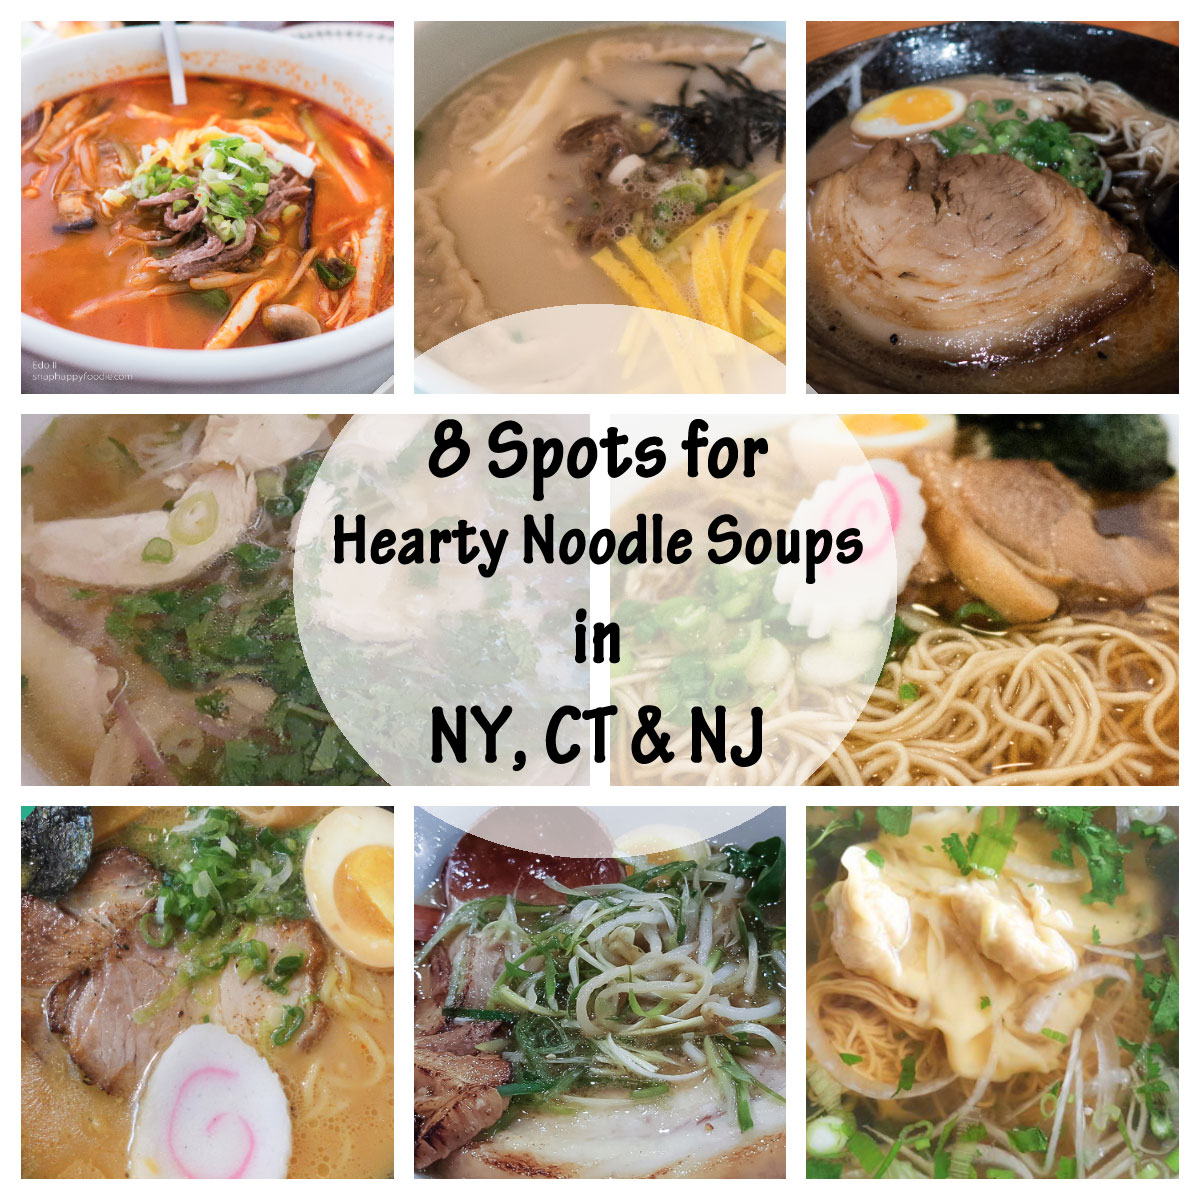 8 Spots for Hearty Noodle Soups in the NY Tri-State Area